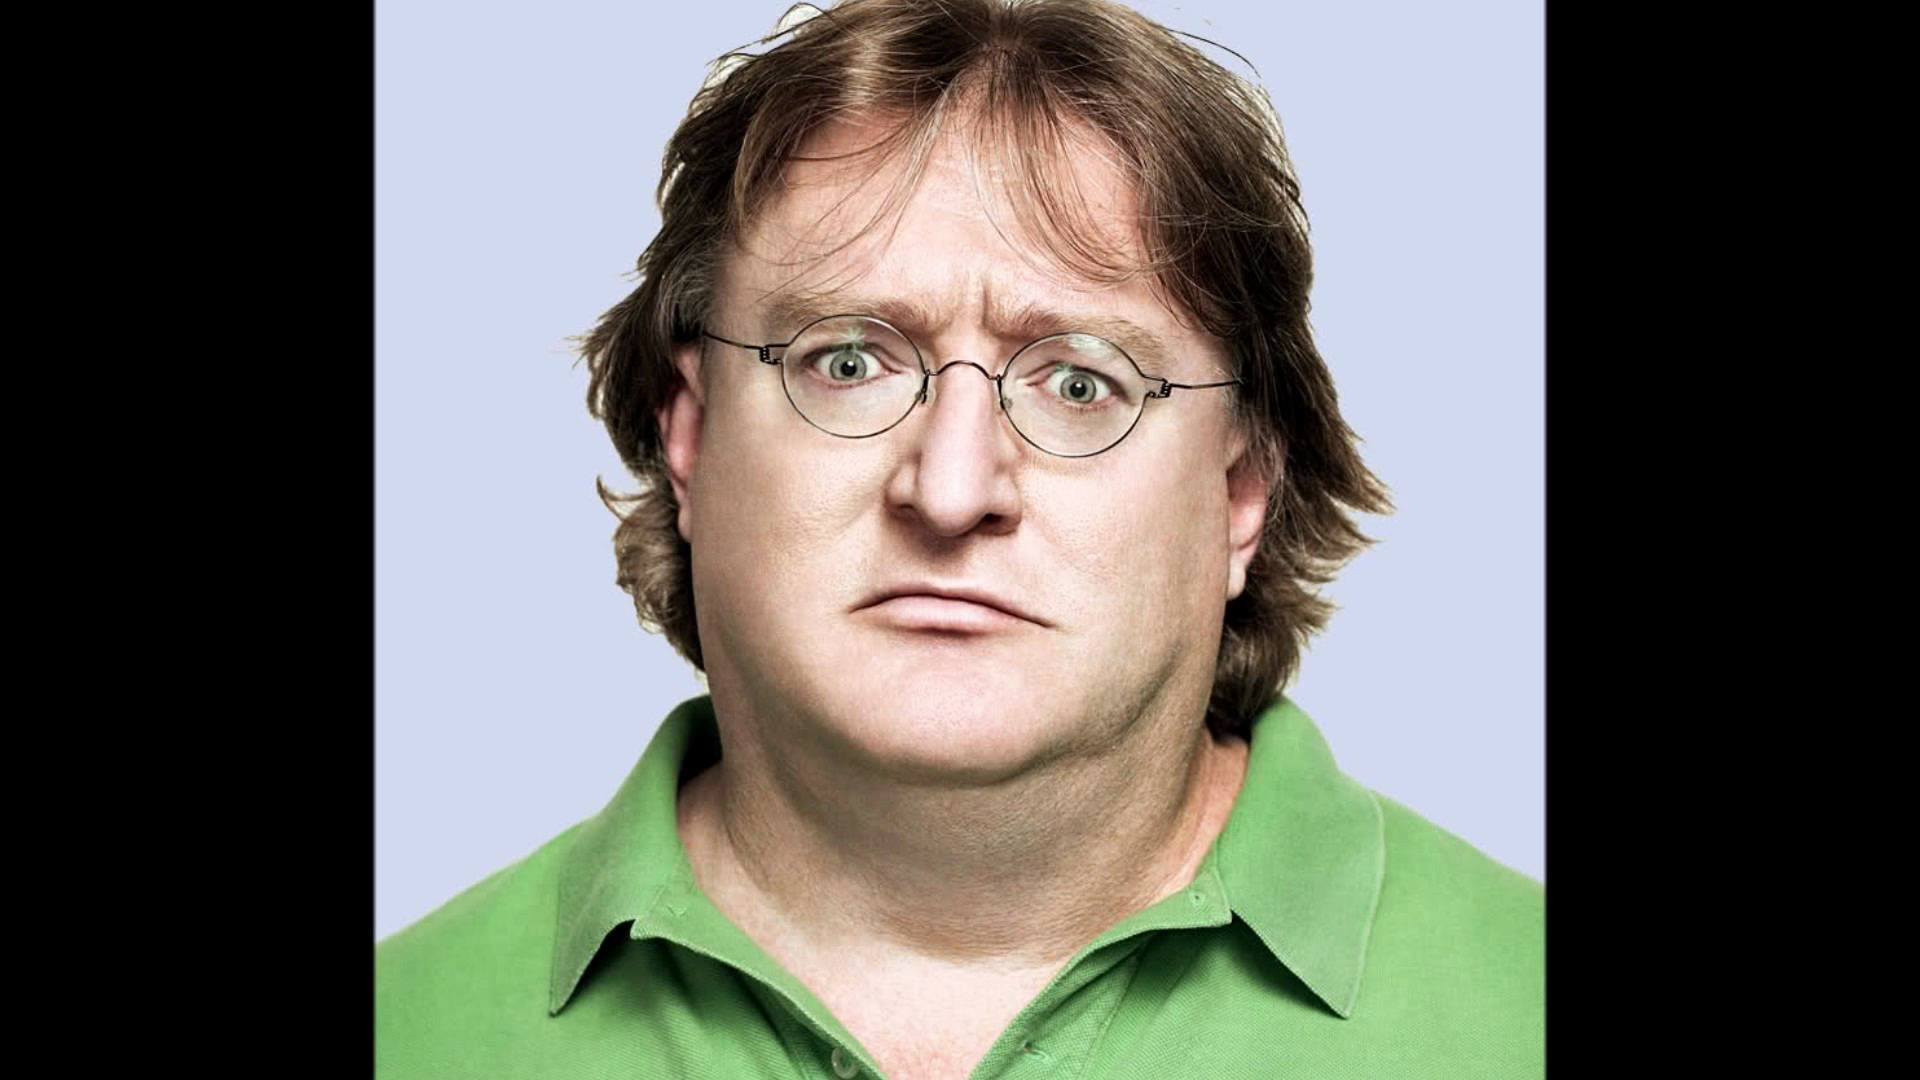 > Gabe Newell Wallpapers